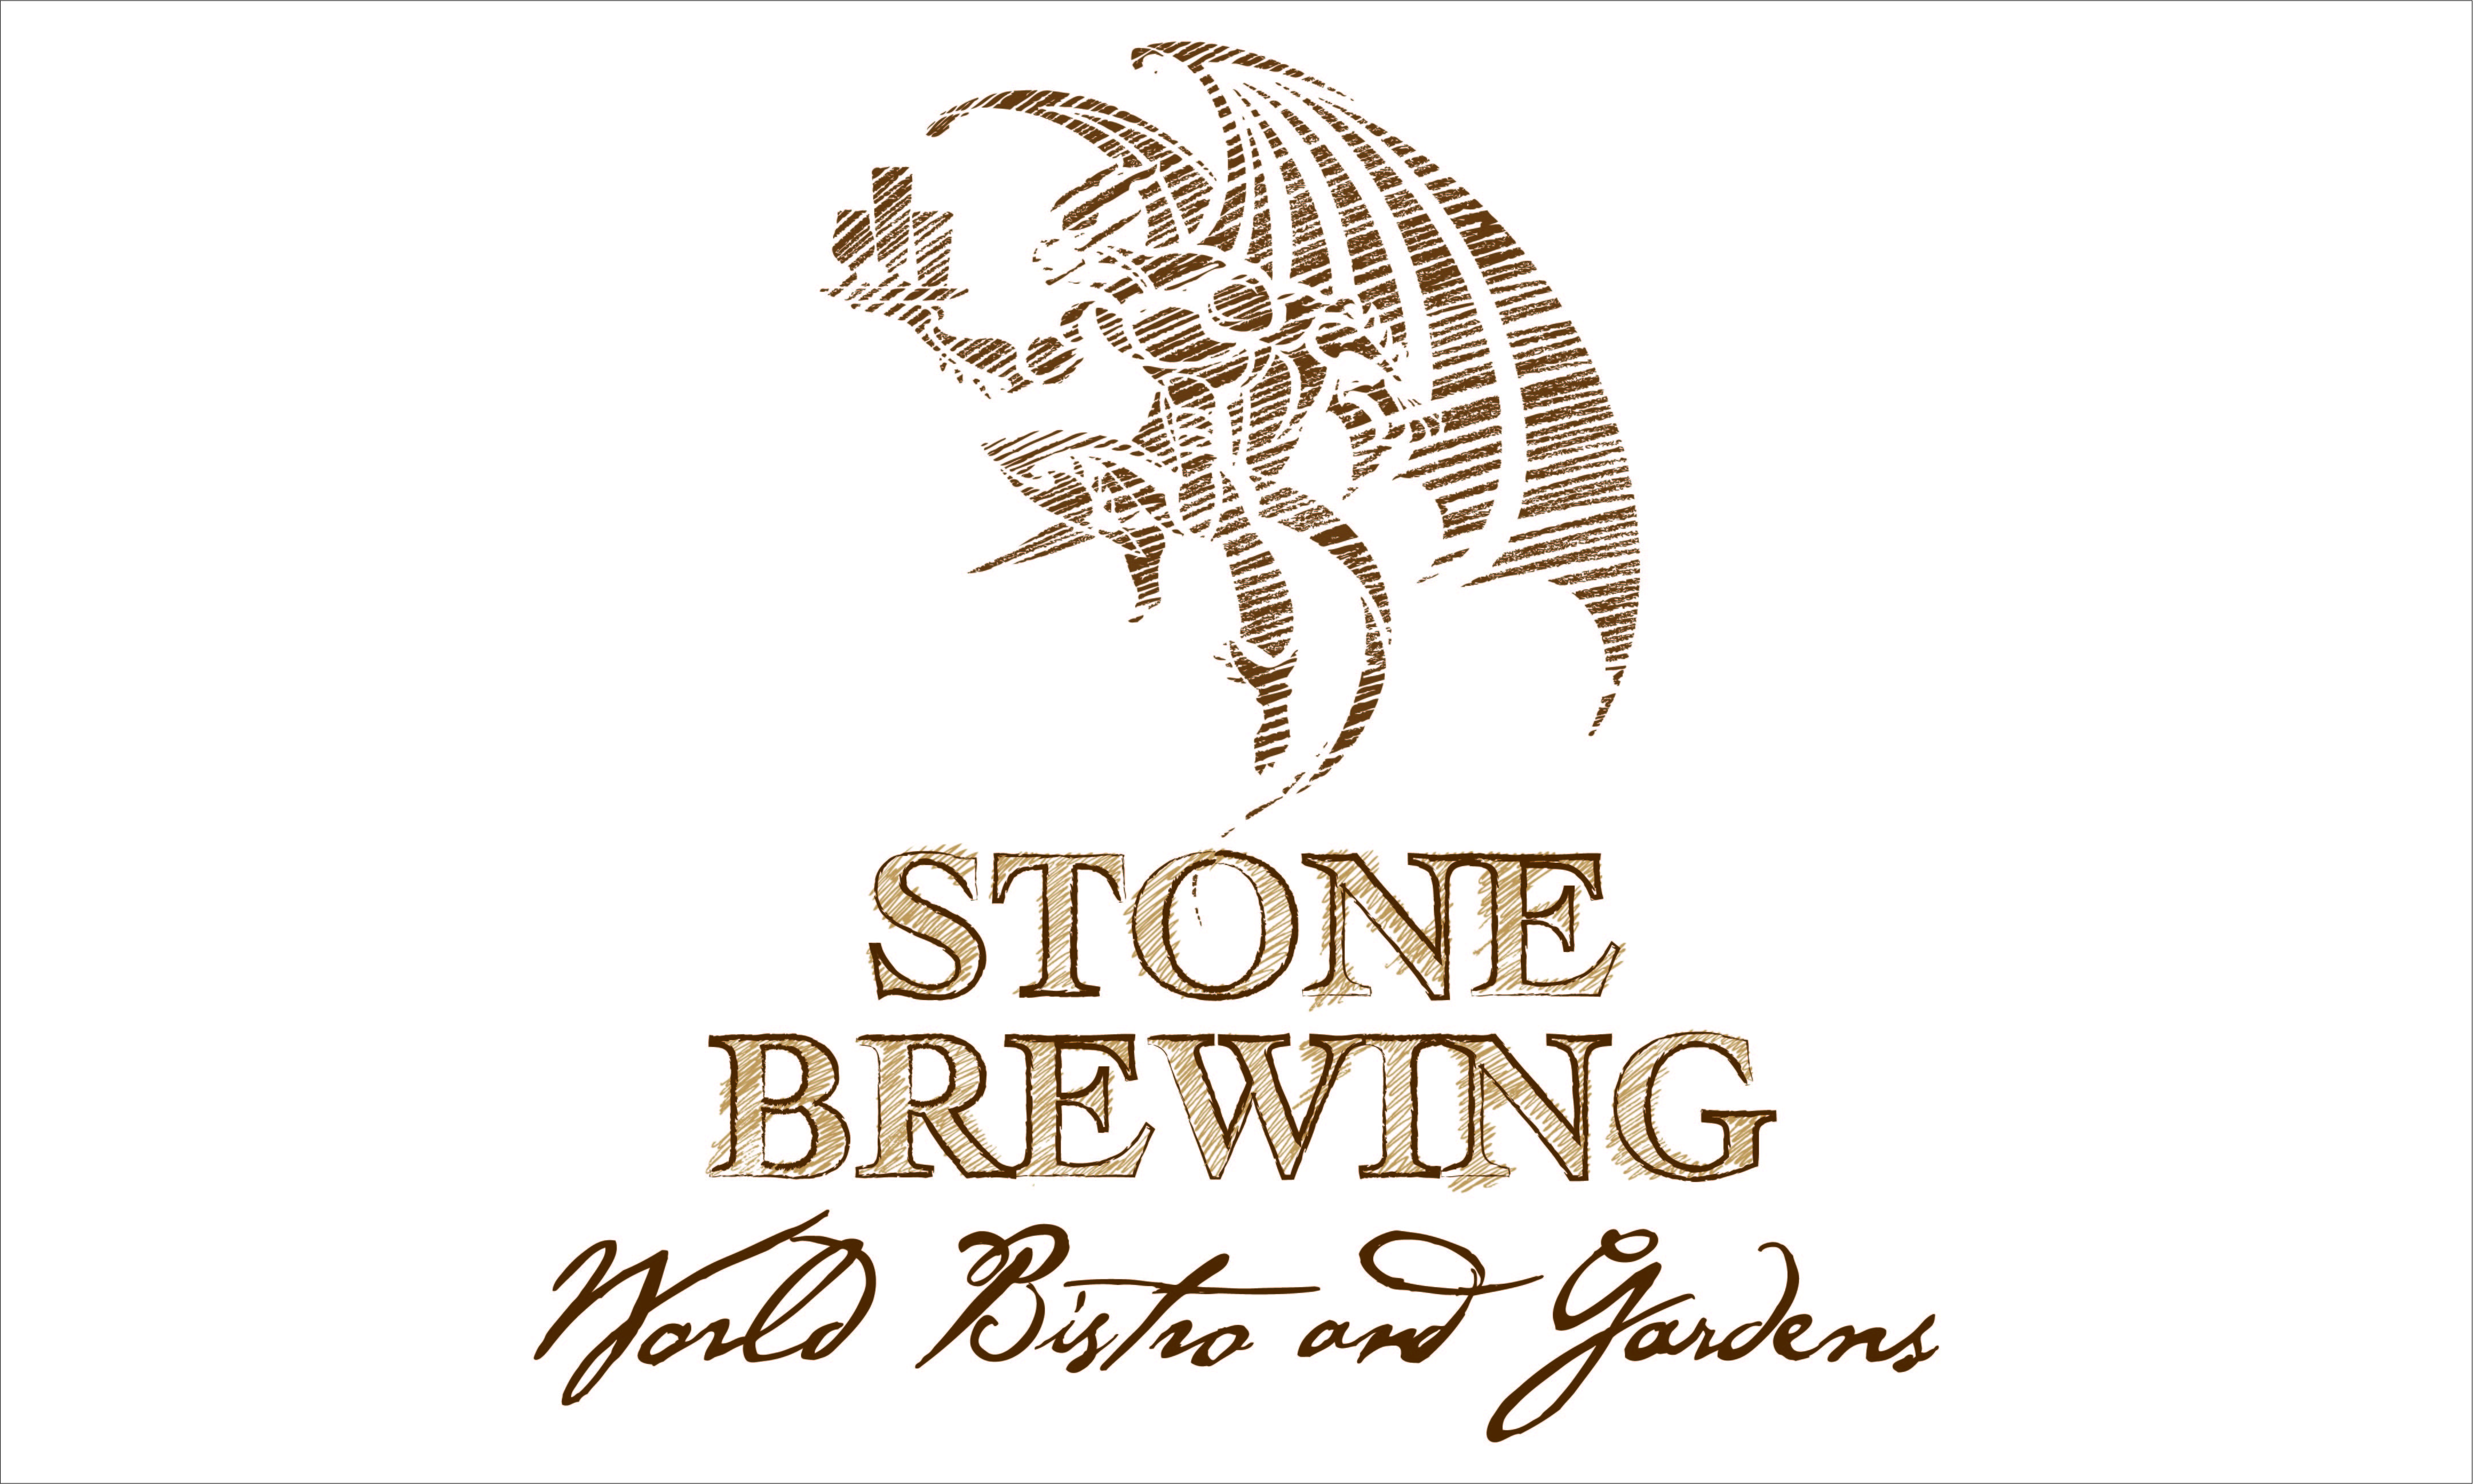 Stone Brewery